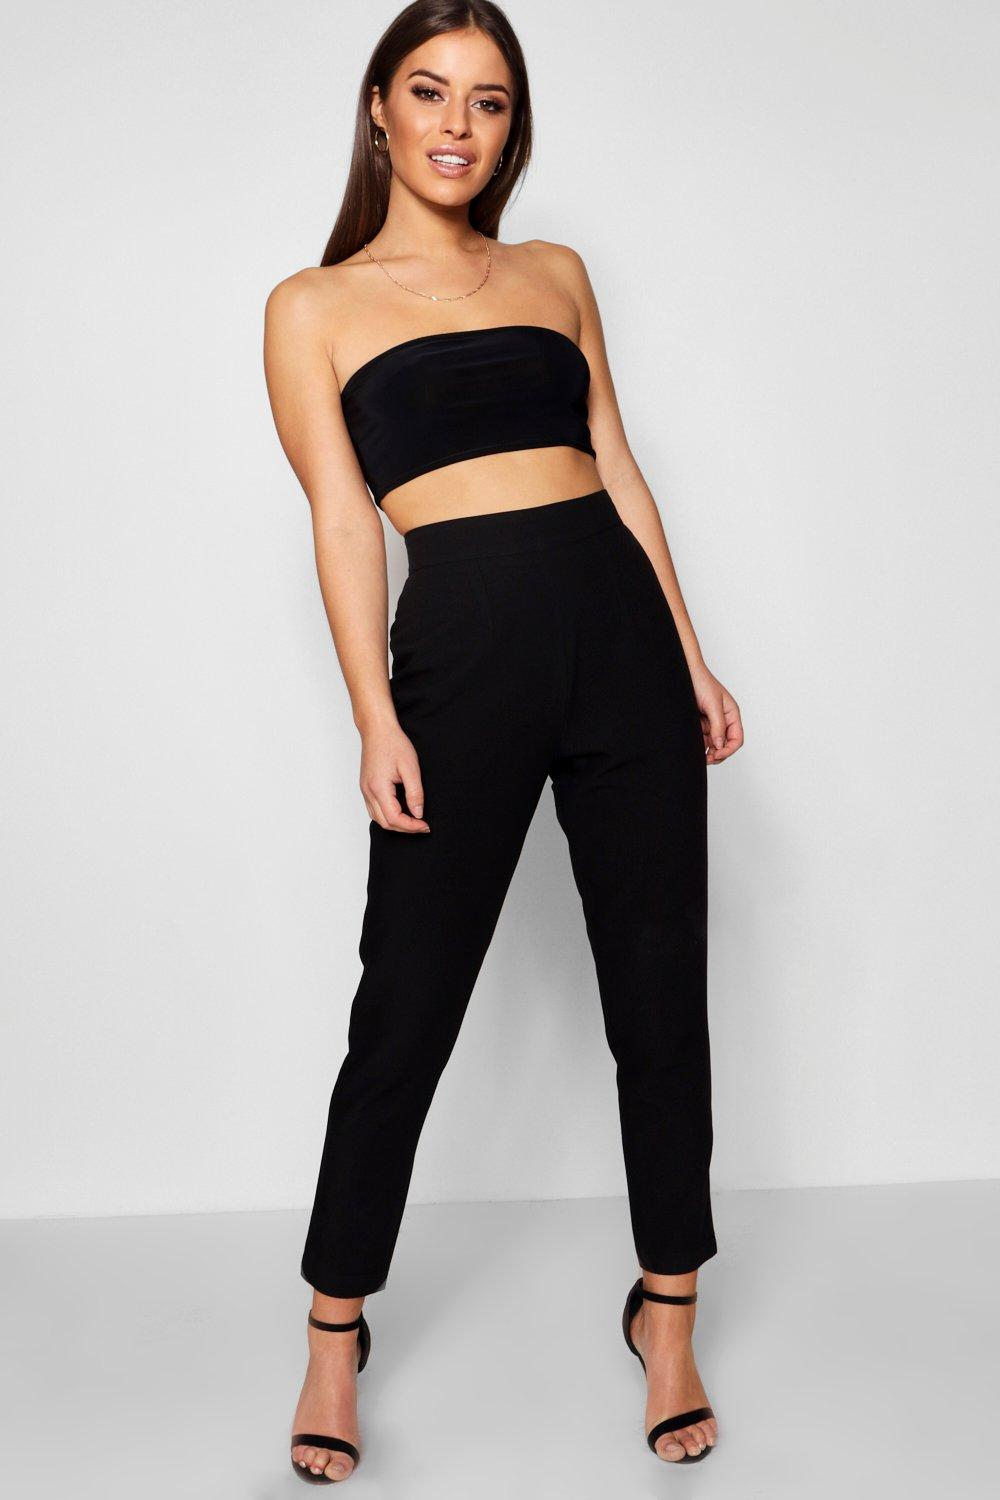 Boohoo Womens Petite Bella High Waisted Woven Tapered Trouser by Ebay Seller